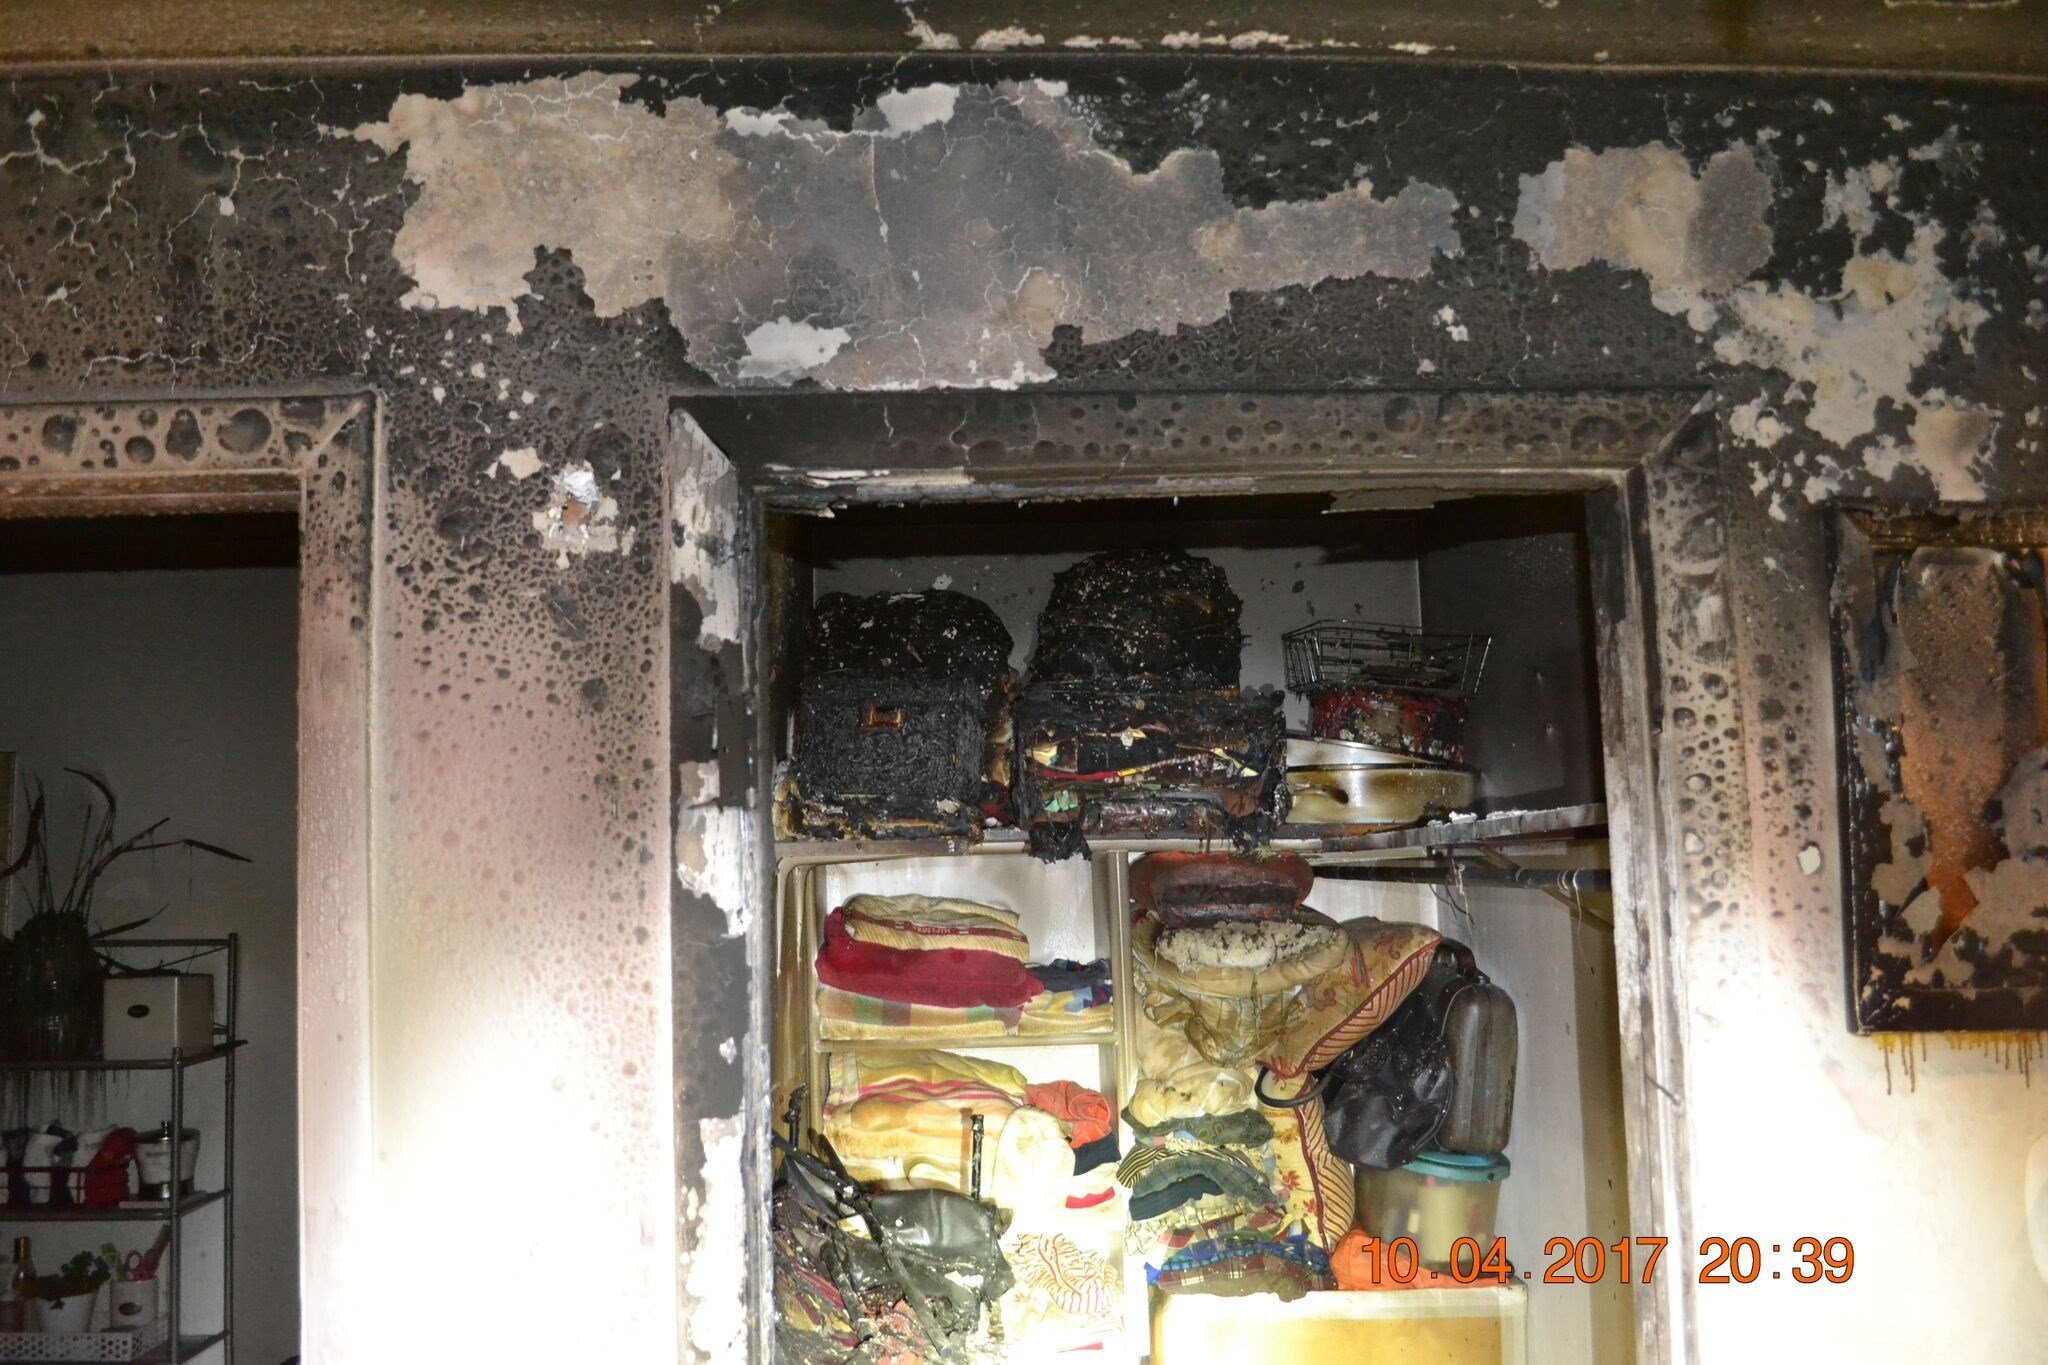 Fire damage at the Avalon Valley Apartments in Colorado Springs.